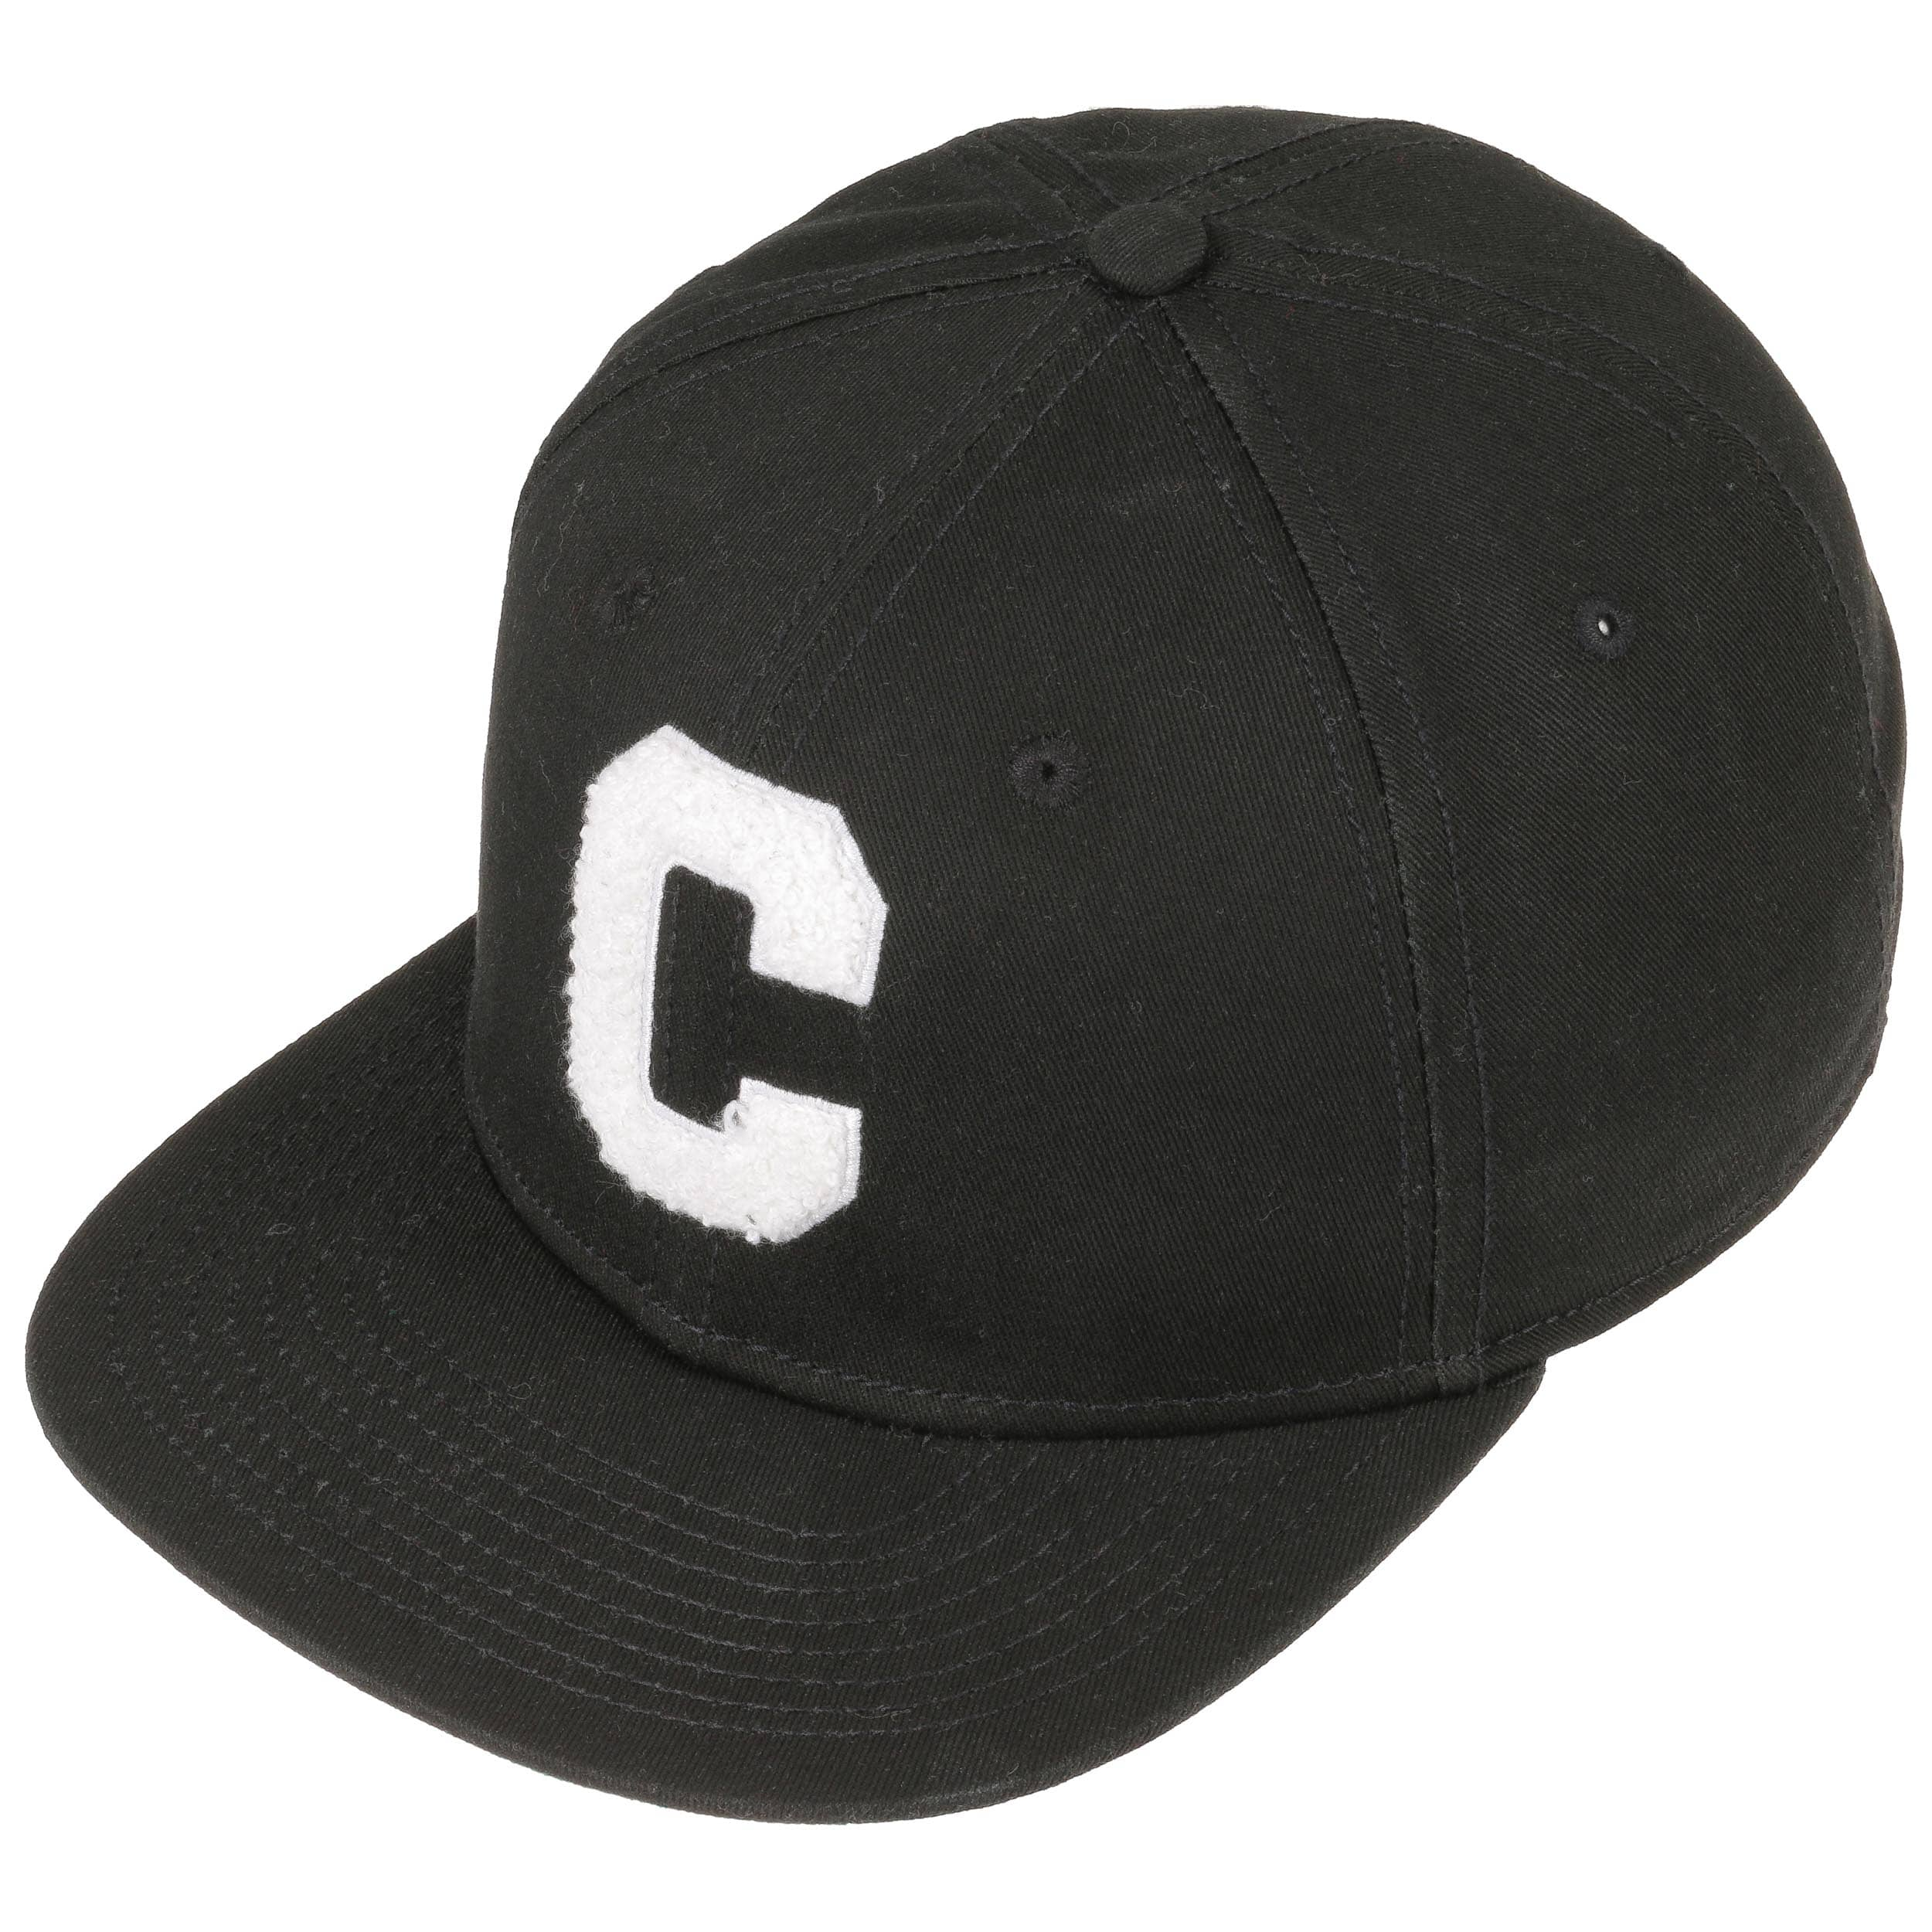 ... Chenille C Snapback Cap by Converse - black 1 ... 810a3a080844